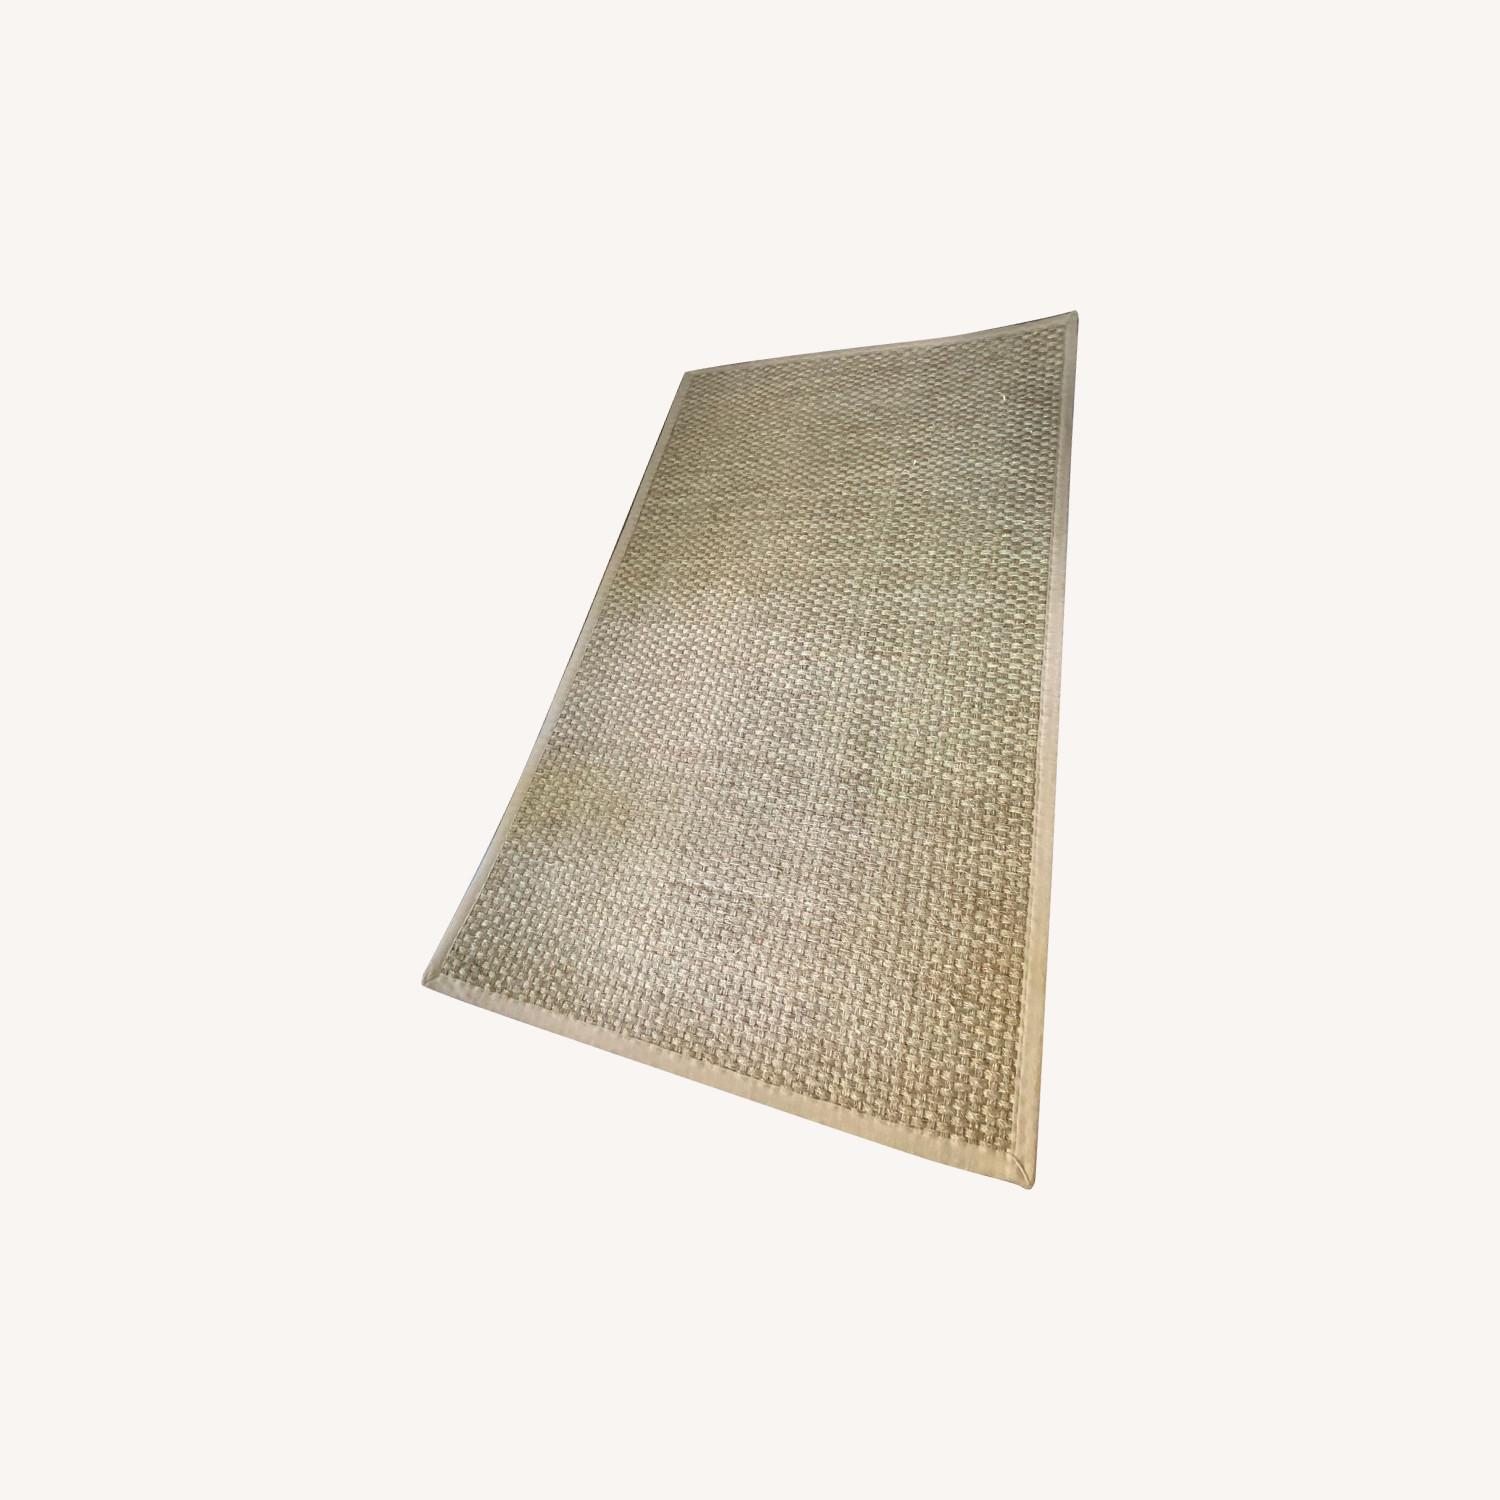 Safavieh Natural Seagrass Area Rug - image-0